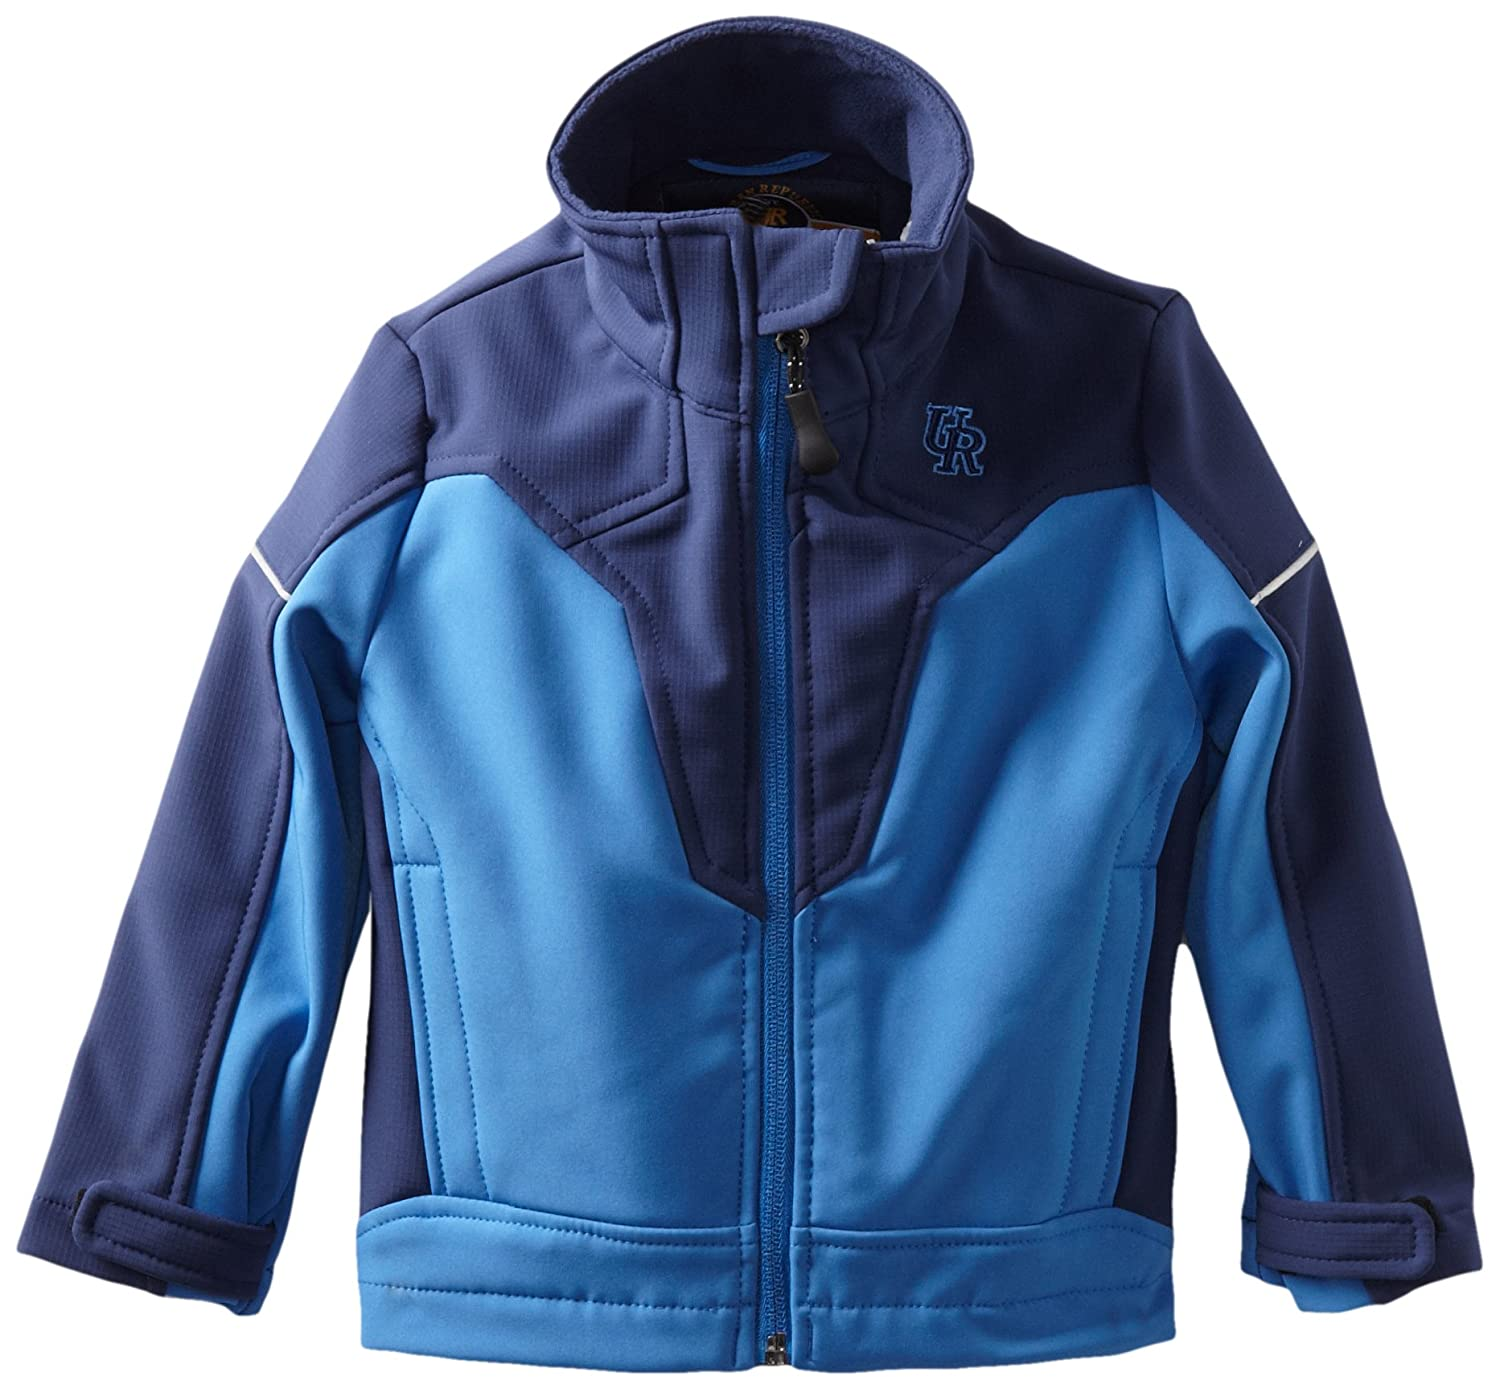 Urban Republic Boys 2-7 Toddler Soft Shell Jacket